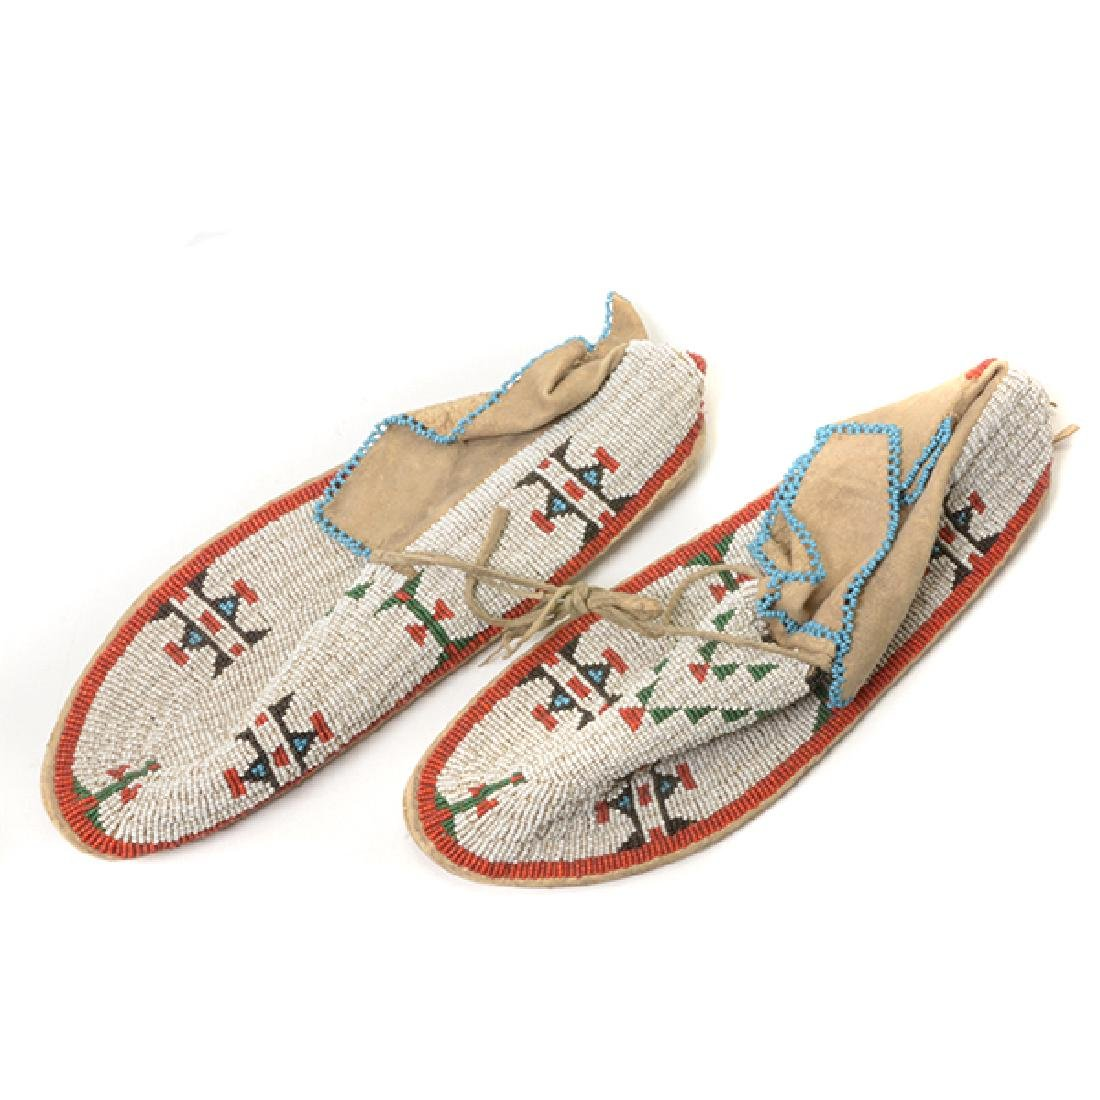 Pair of Northern Plains Beaded Gloves and Moccasins - 2